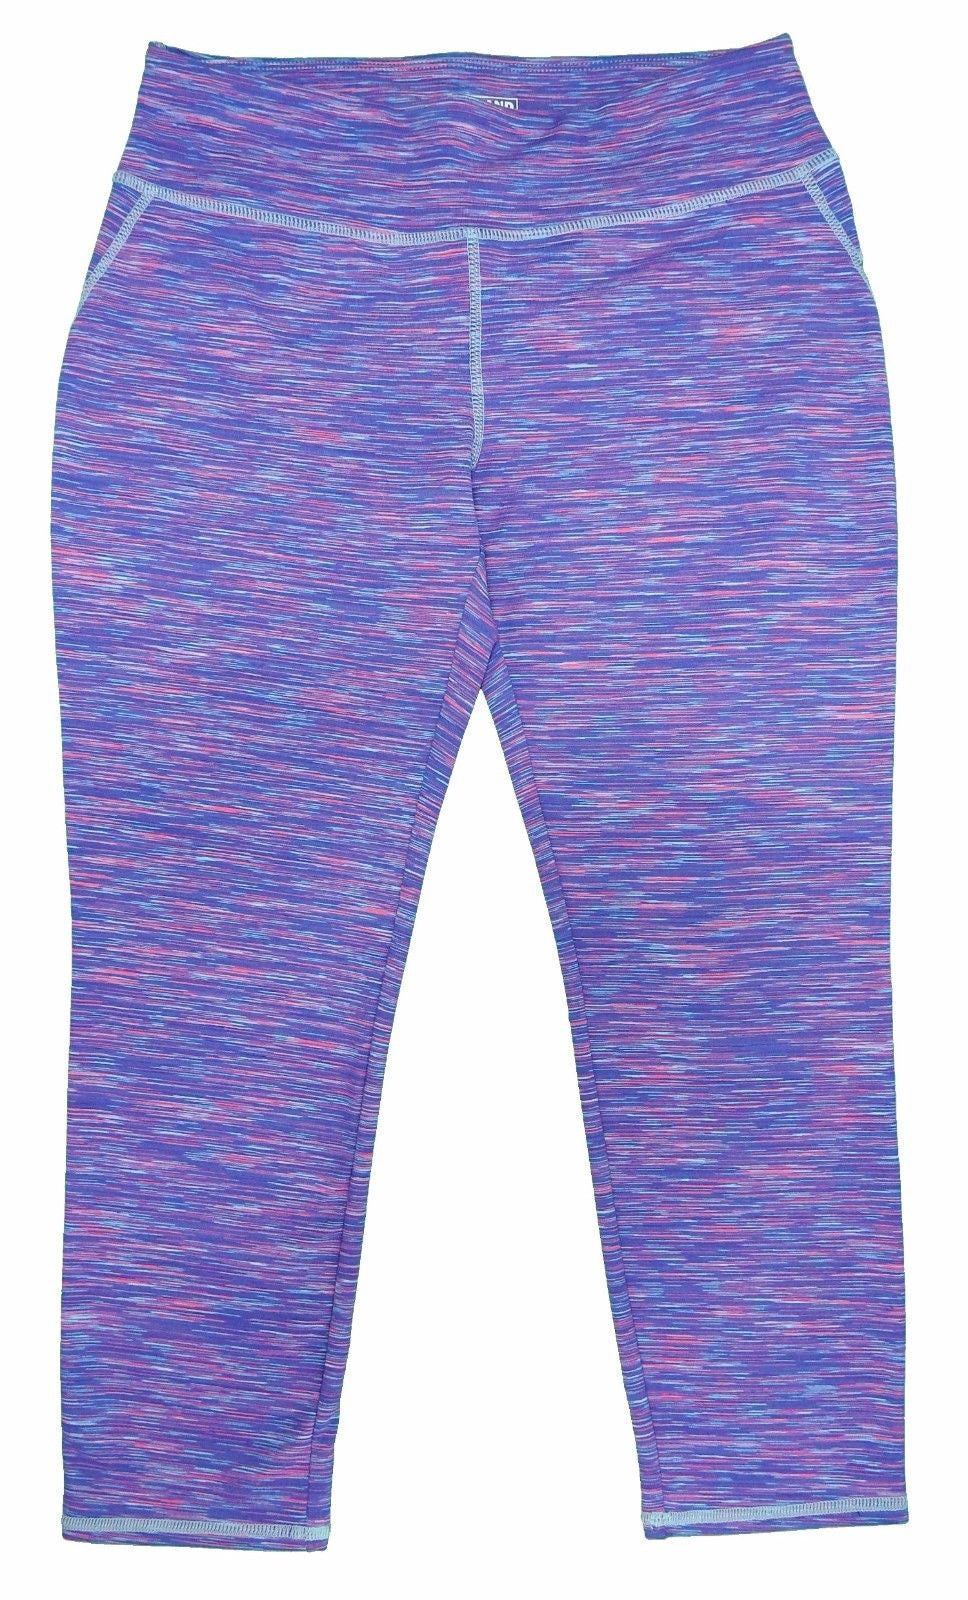 Kirkland Signature Girls Capri Leggings, Purple/Light Blue/Pink